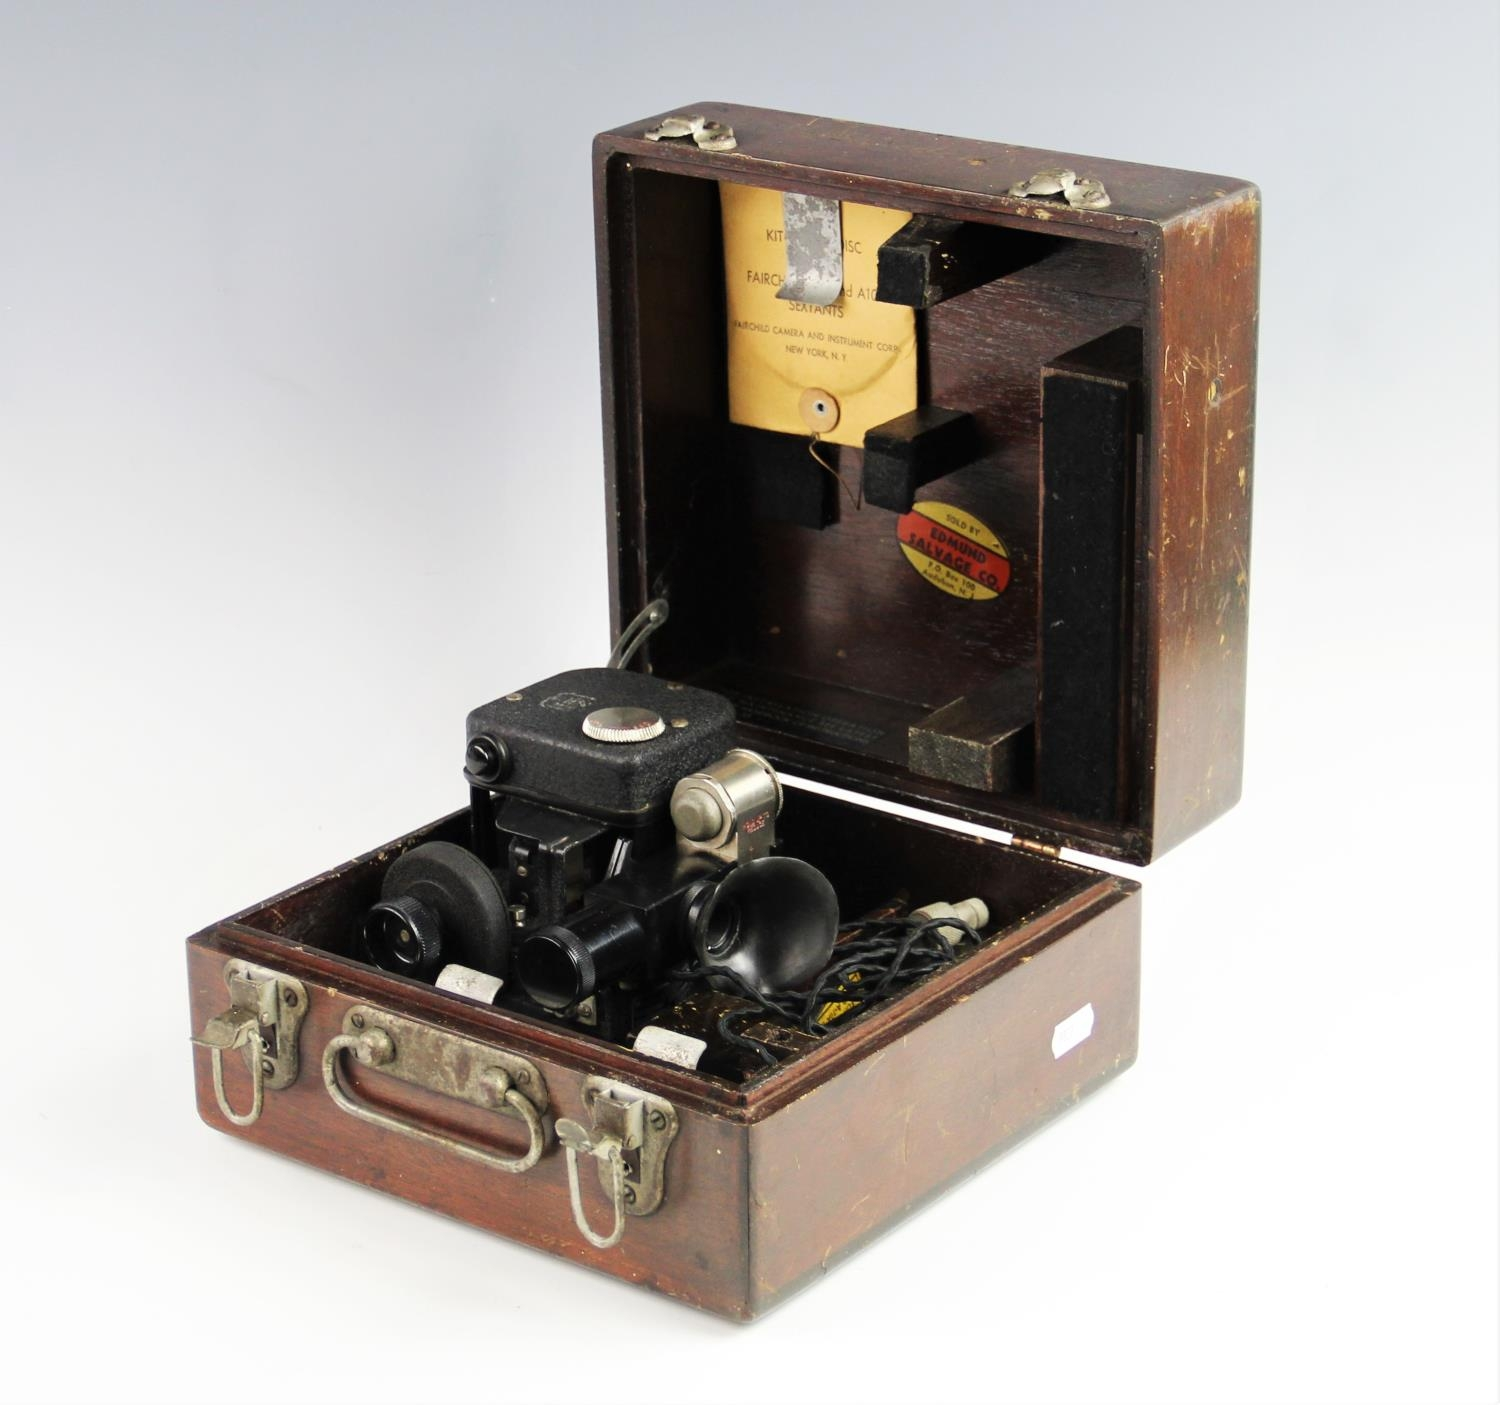 A cased Fairchild Camera And Instrument ...